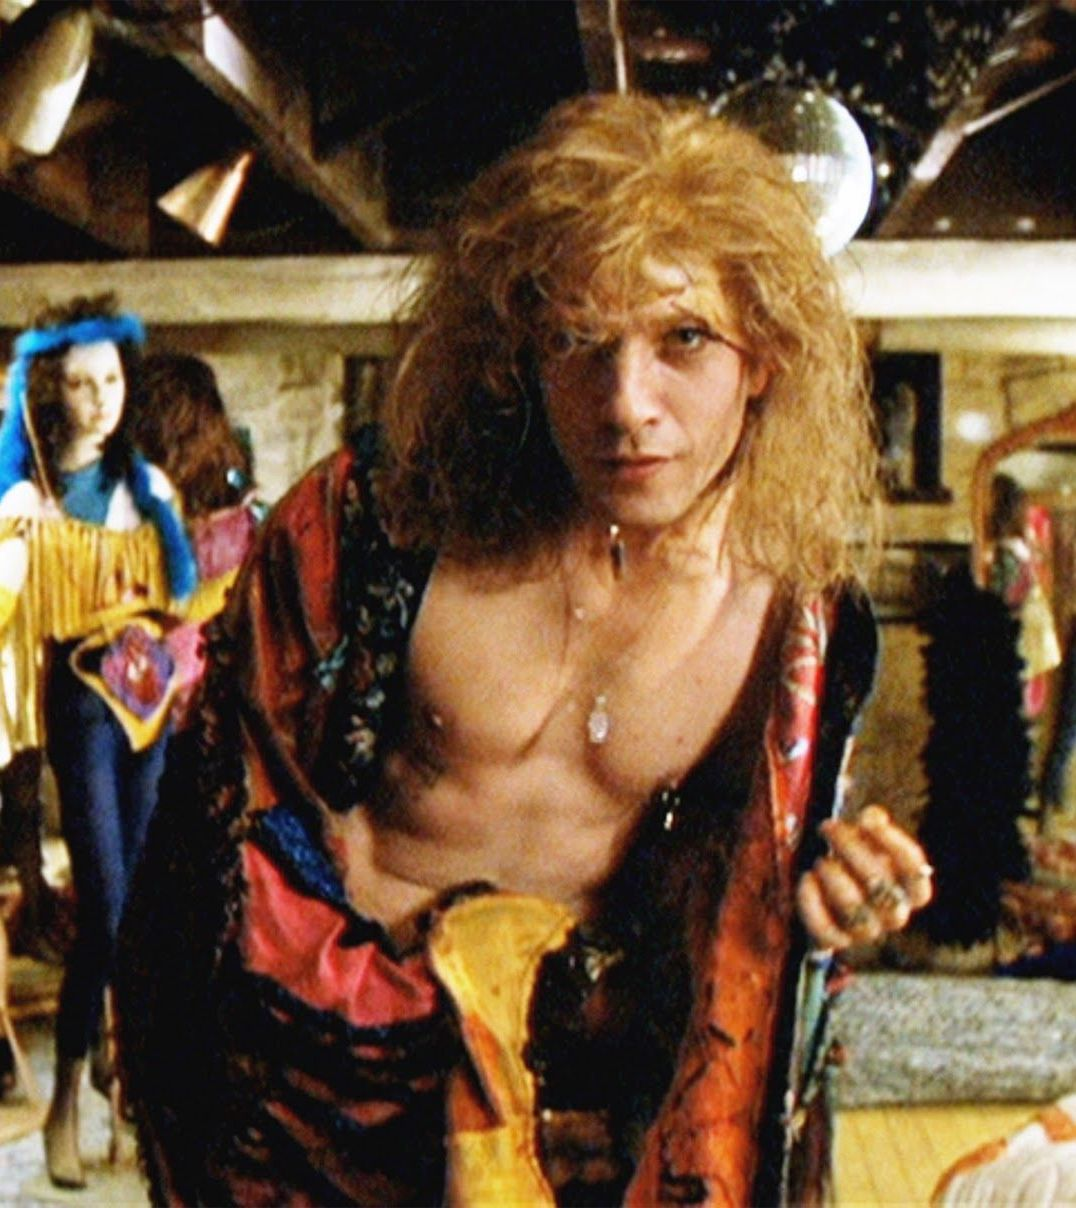 Ted Levine Buffalo Bill dance wig The Silence of the Lambs